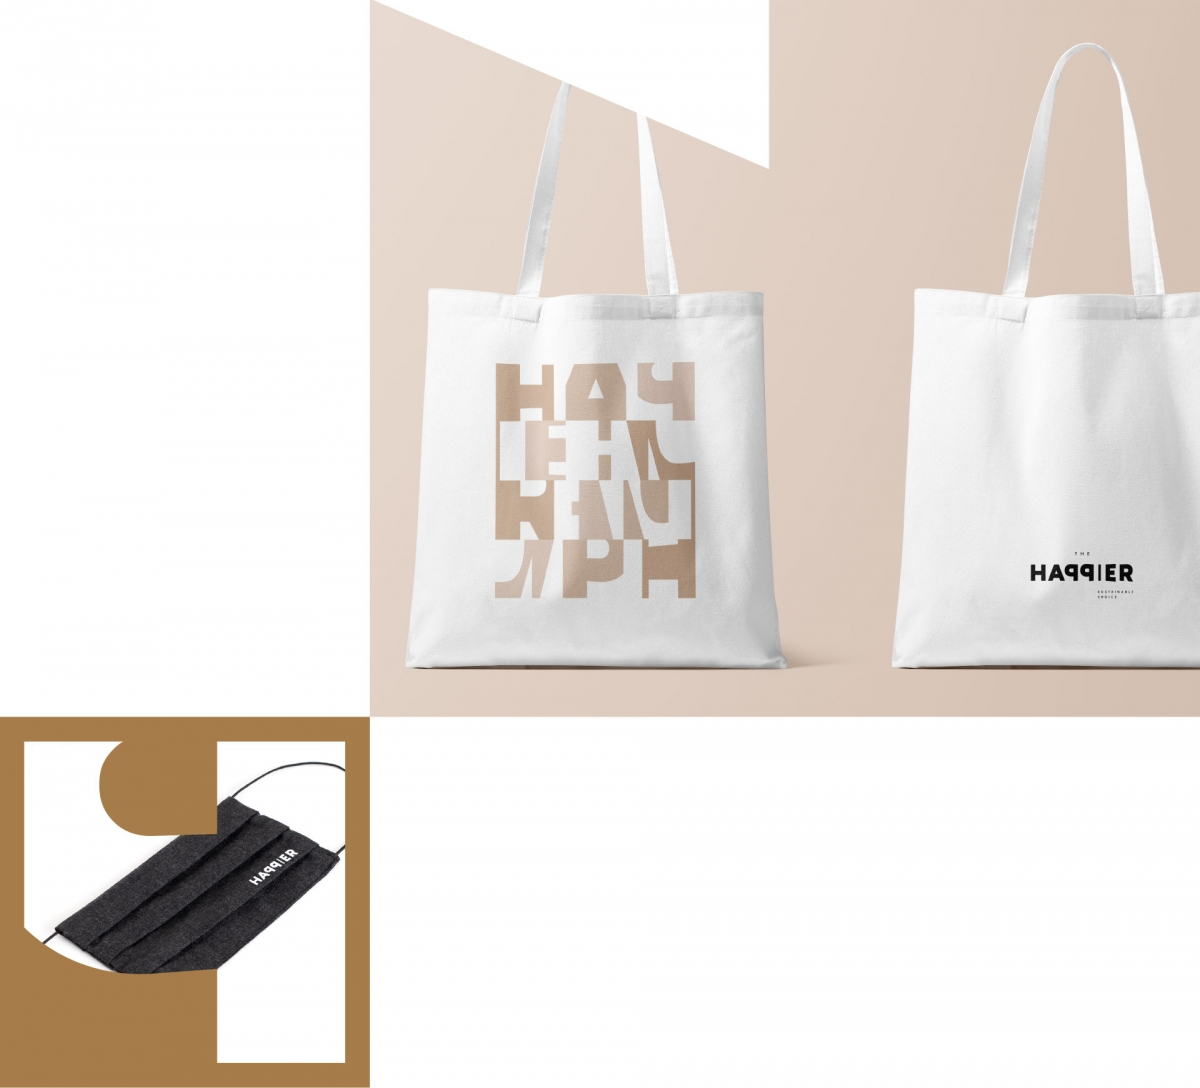 The happier tote bag and mask, part of the visual identity